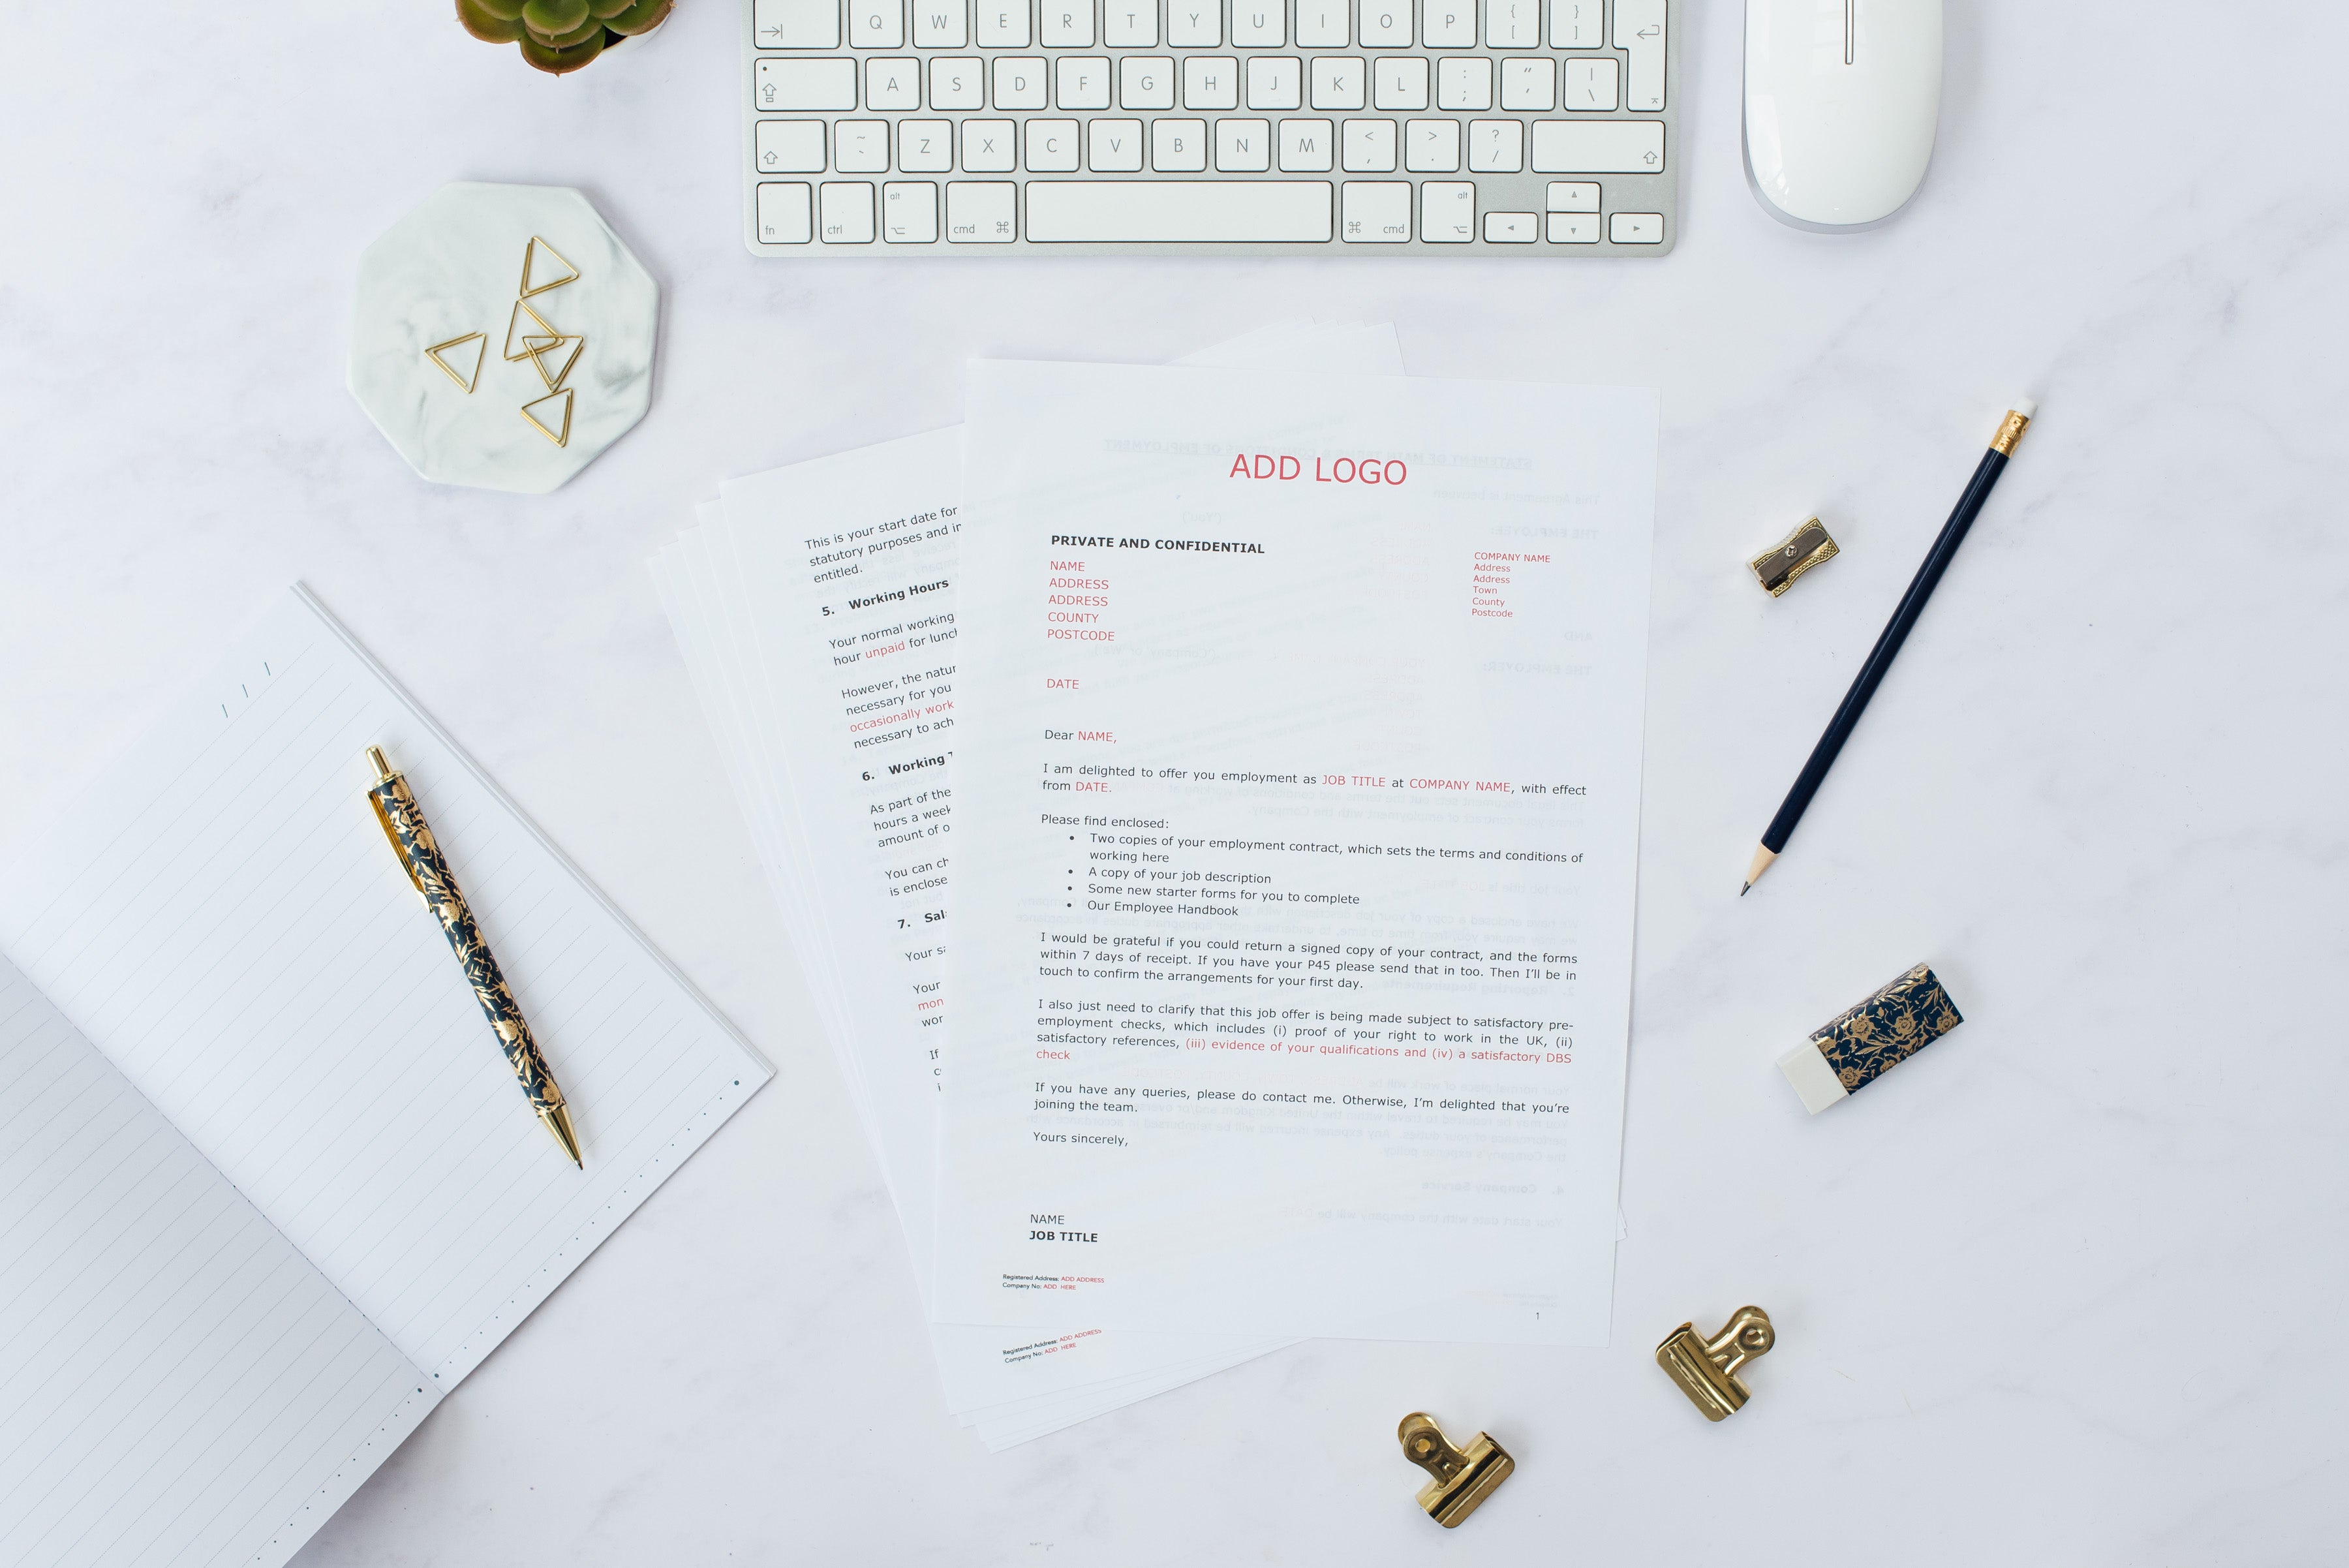 SELF-EMPLOYED CONTRACTOR AGREEMENT TEMPLATE